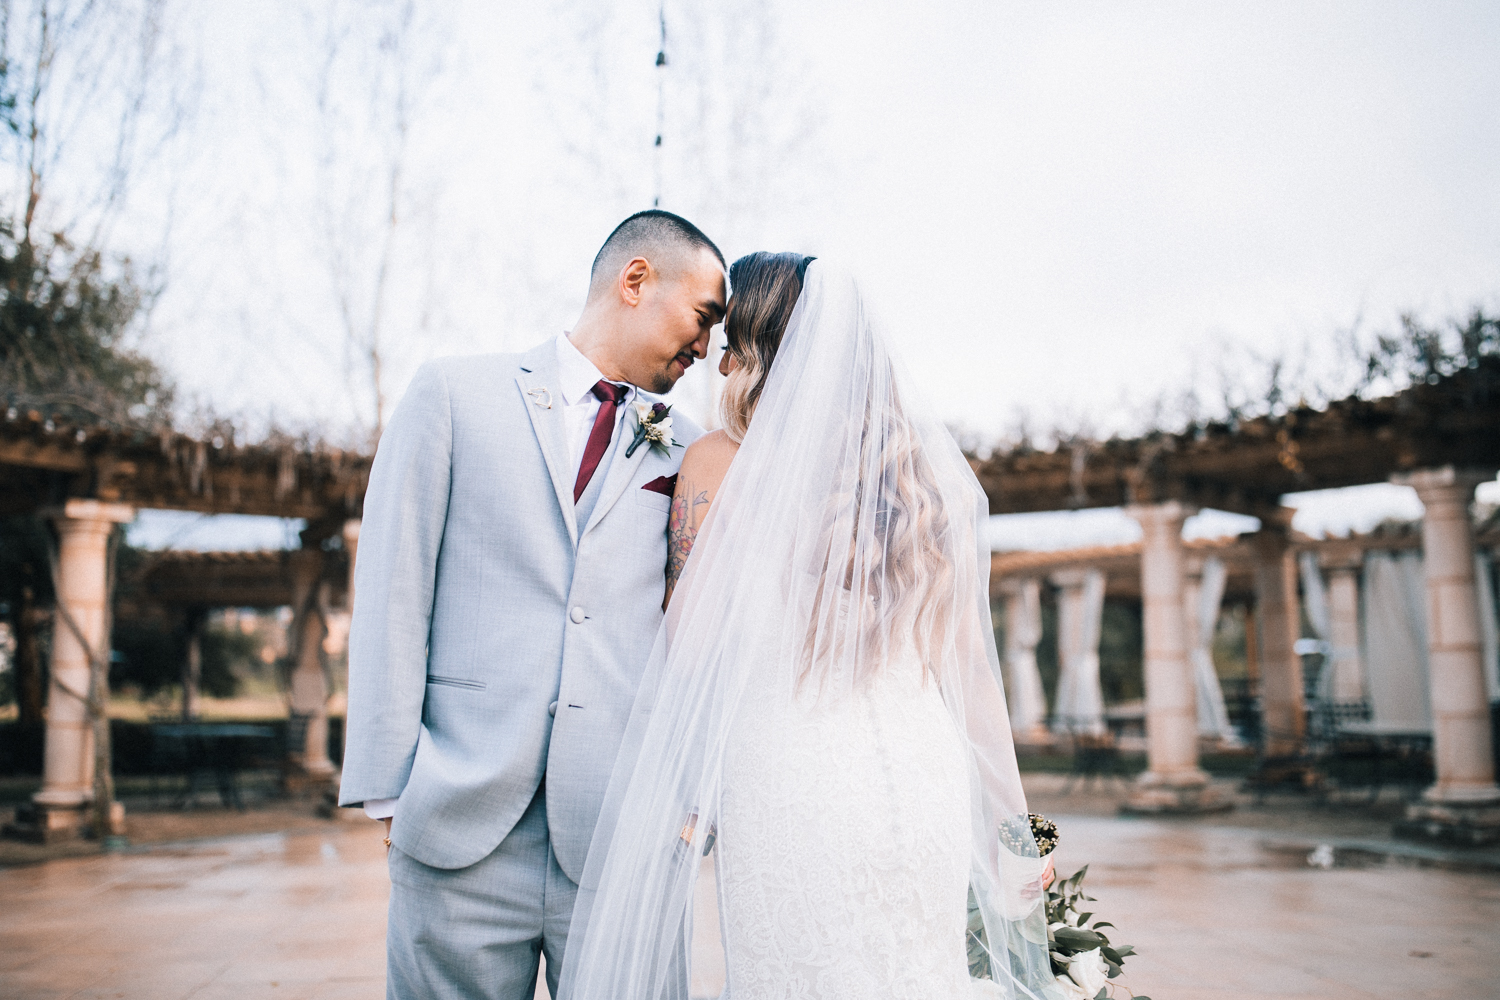 2019_01_ 202019.01.20 Santiago Wedding Blog Photos Edited For Web 0075.jpg